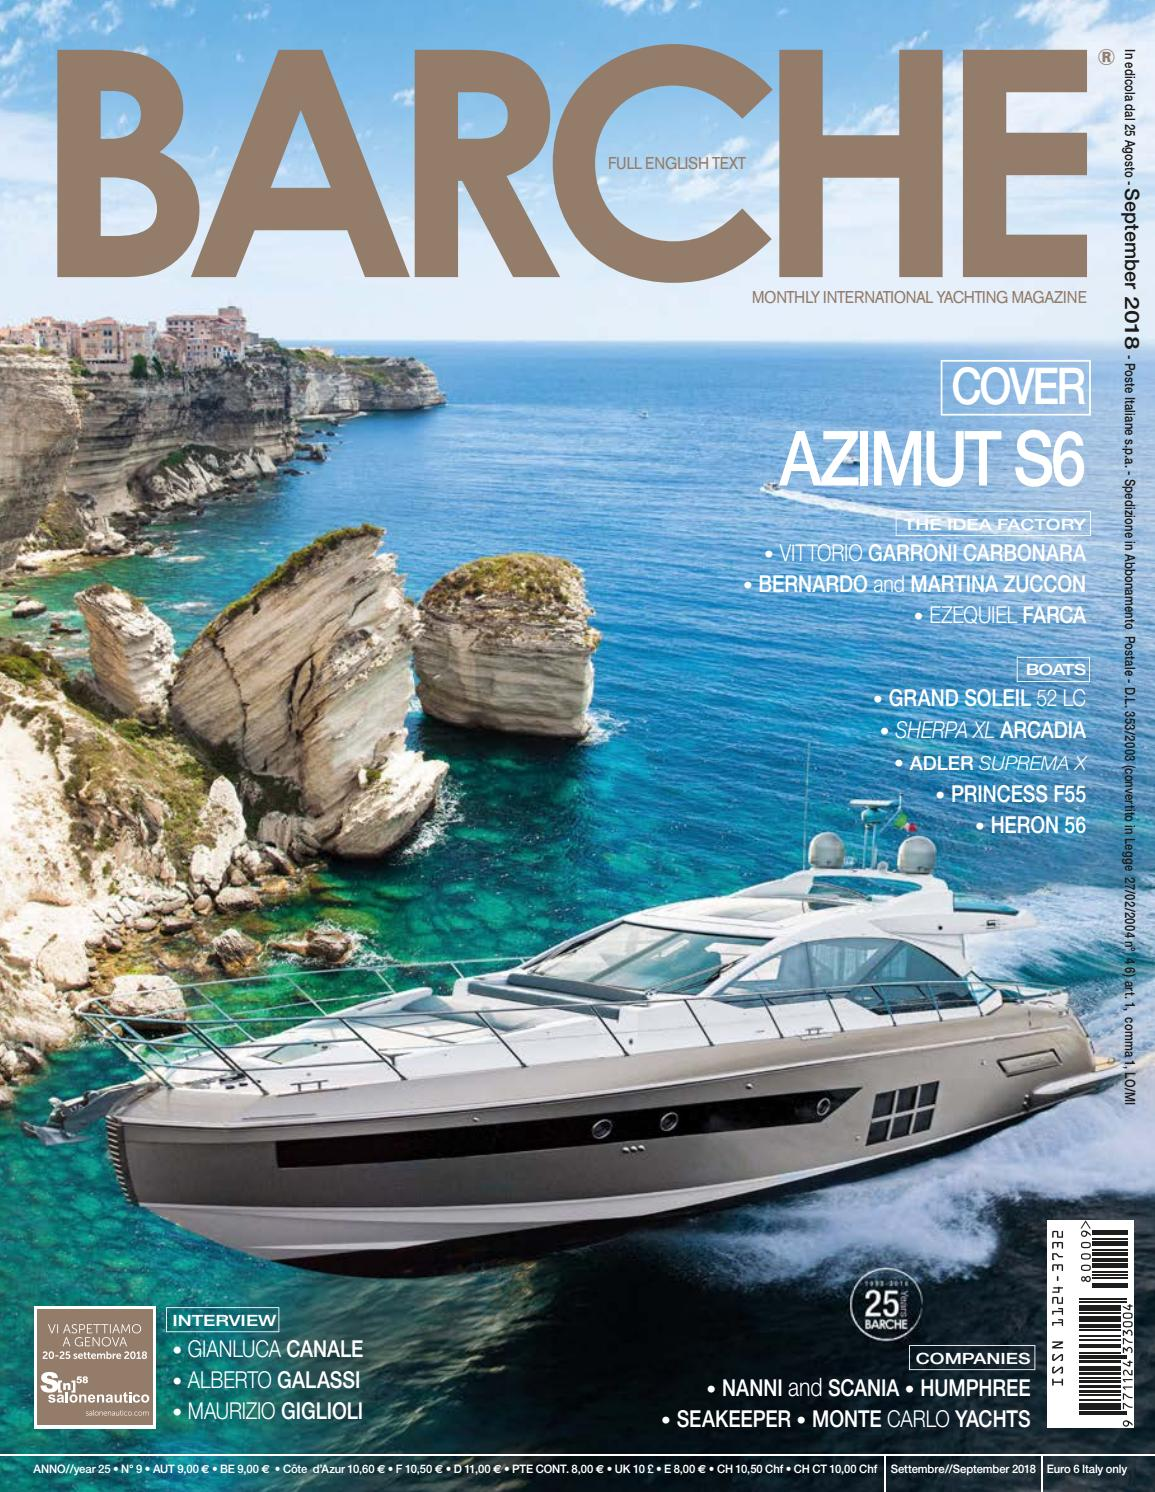 September Srl By International Barche 2018 Press Issuu Sea qUzpjLSVGM